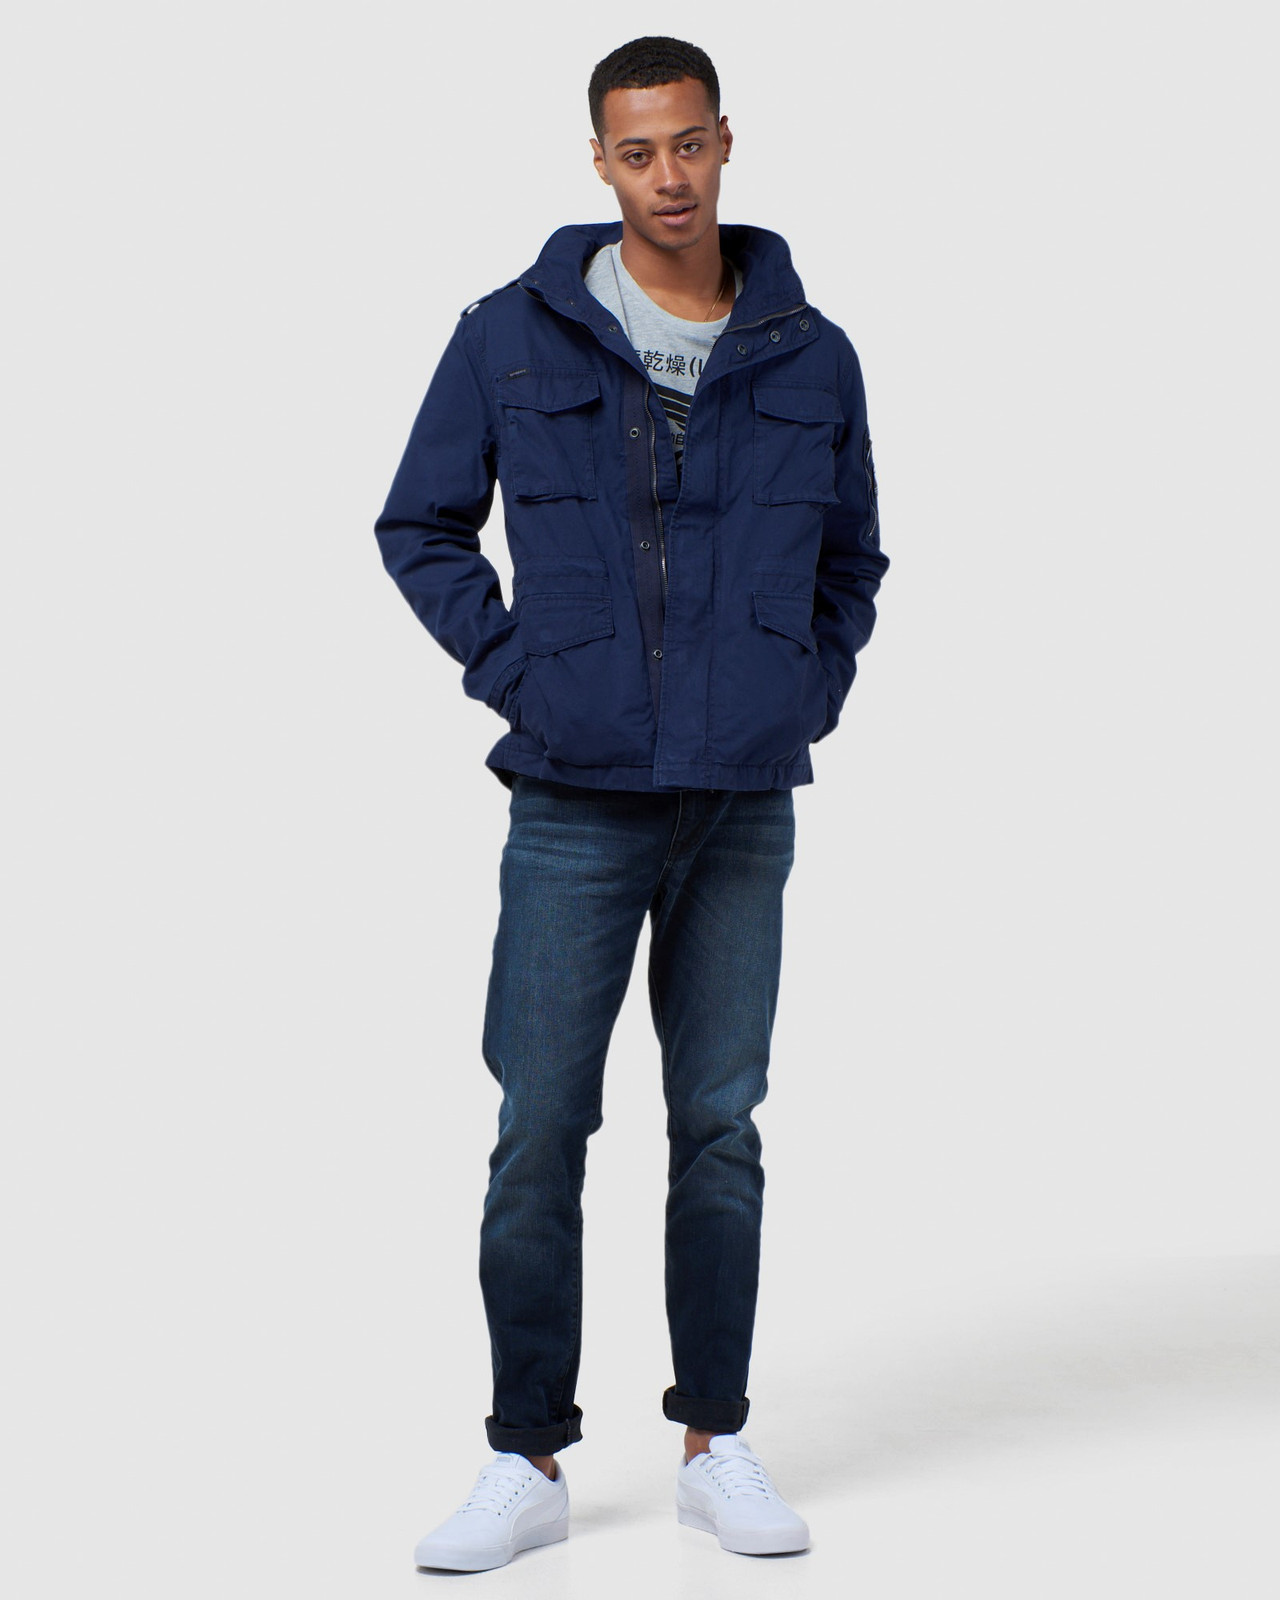 Superdry Mens CLASSIC RECRUIT JACKET Navy Military Jackets 1